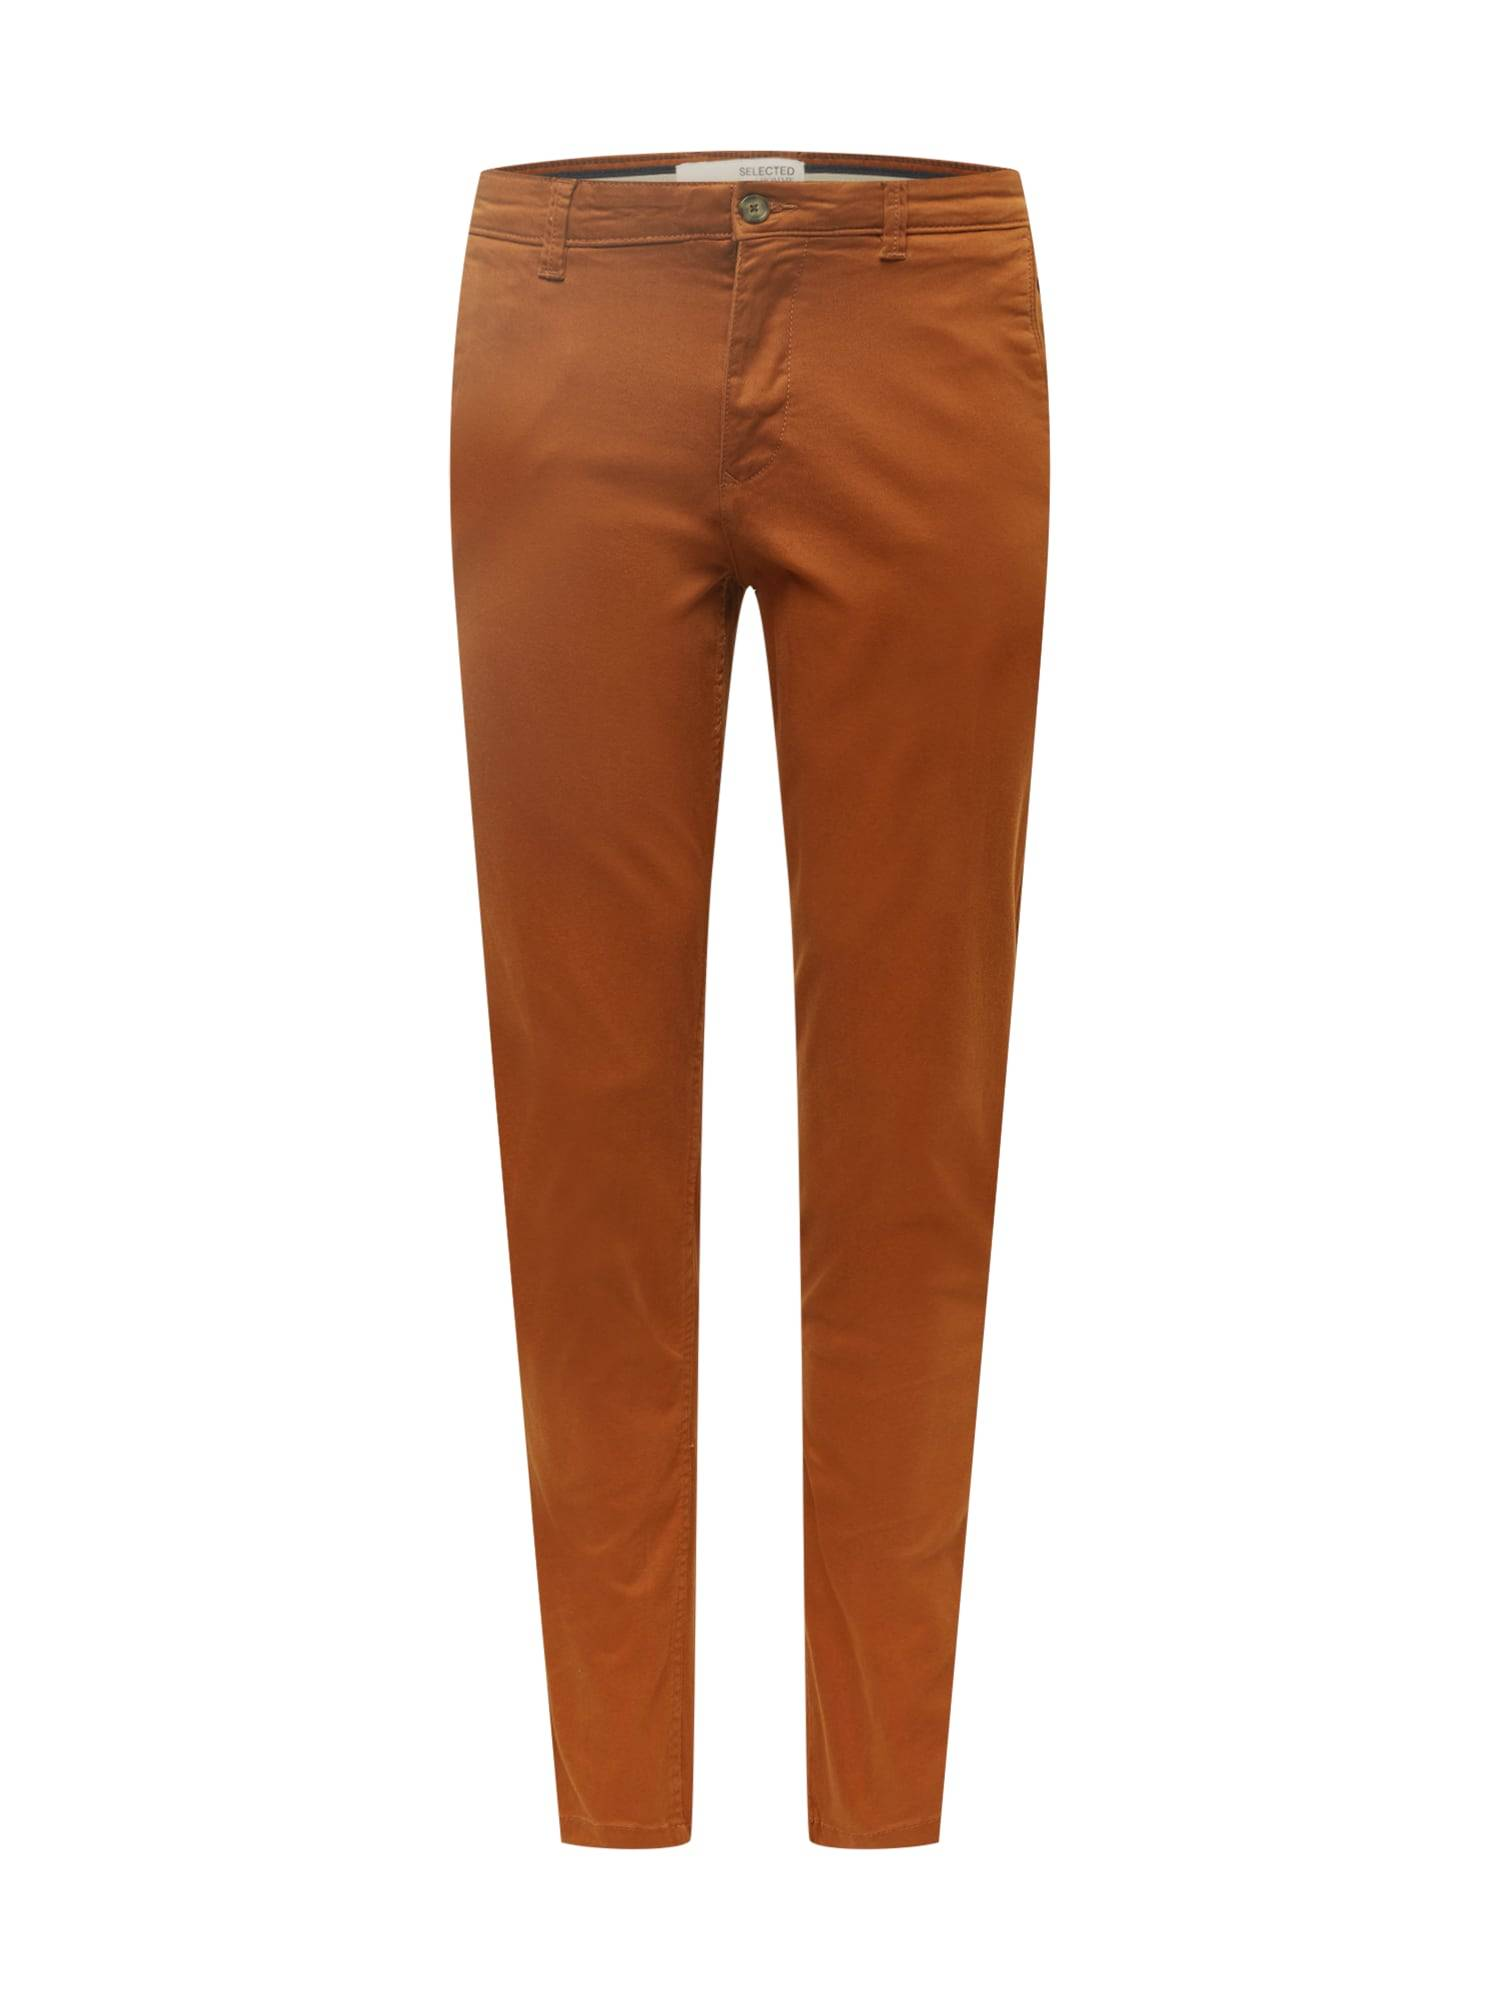 SELECTED HOMME Pantalon chino 'New Paris'  - Marron - Taille: 33 - male